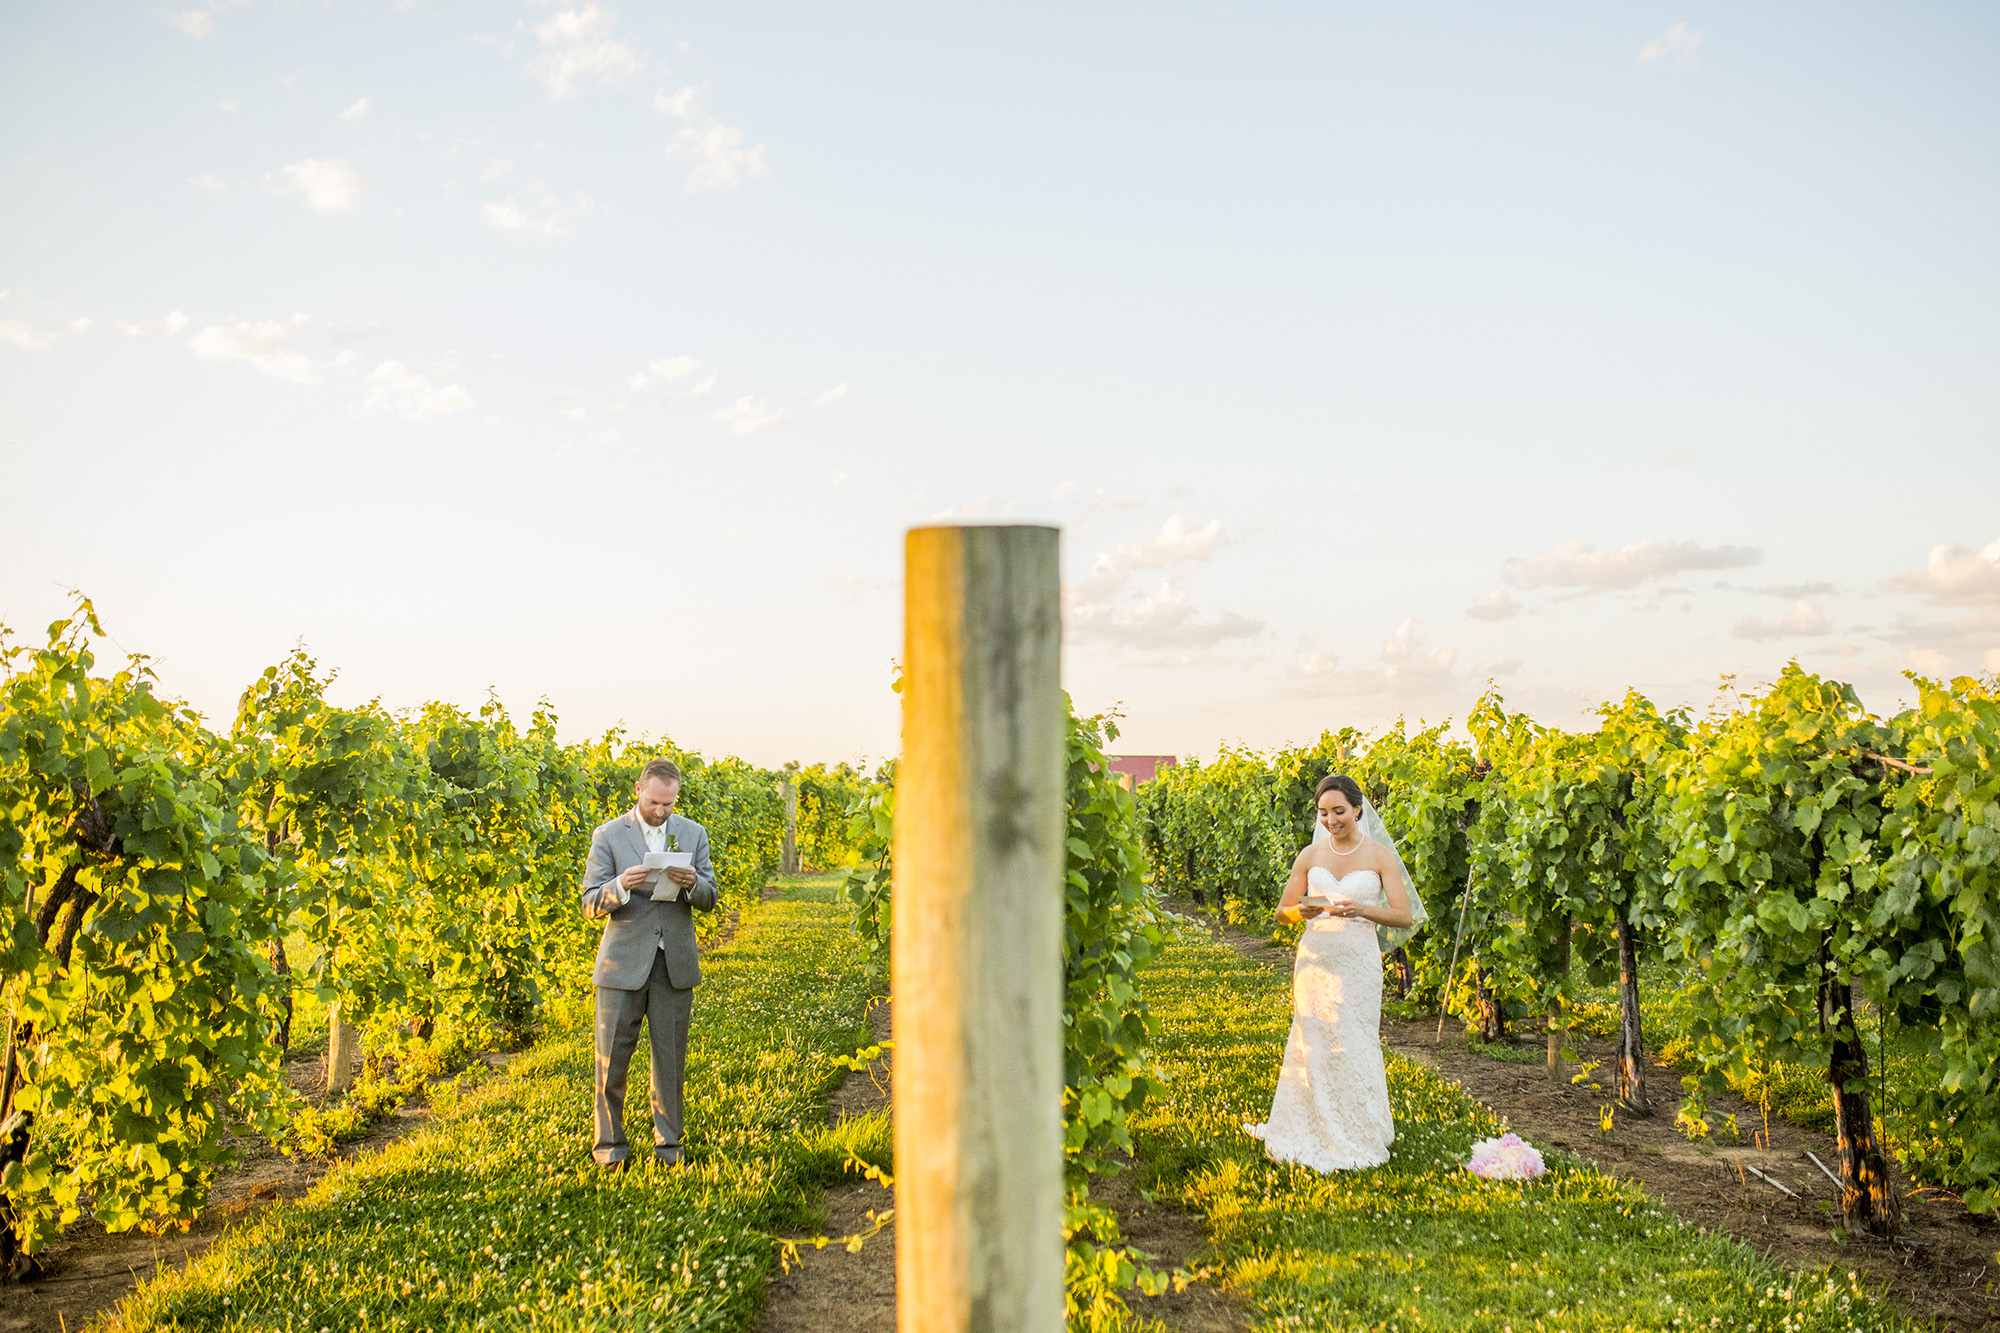 Seriously_Sabrina_Photography_Lexington_Kentucky_Talon_Winery_Wedding_Kjellsen162.jpg